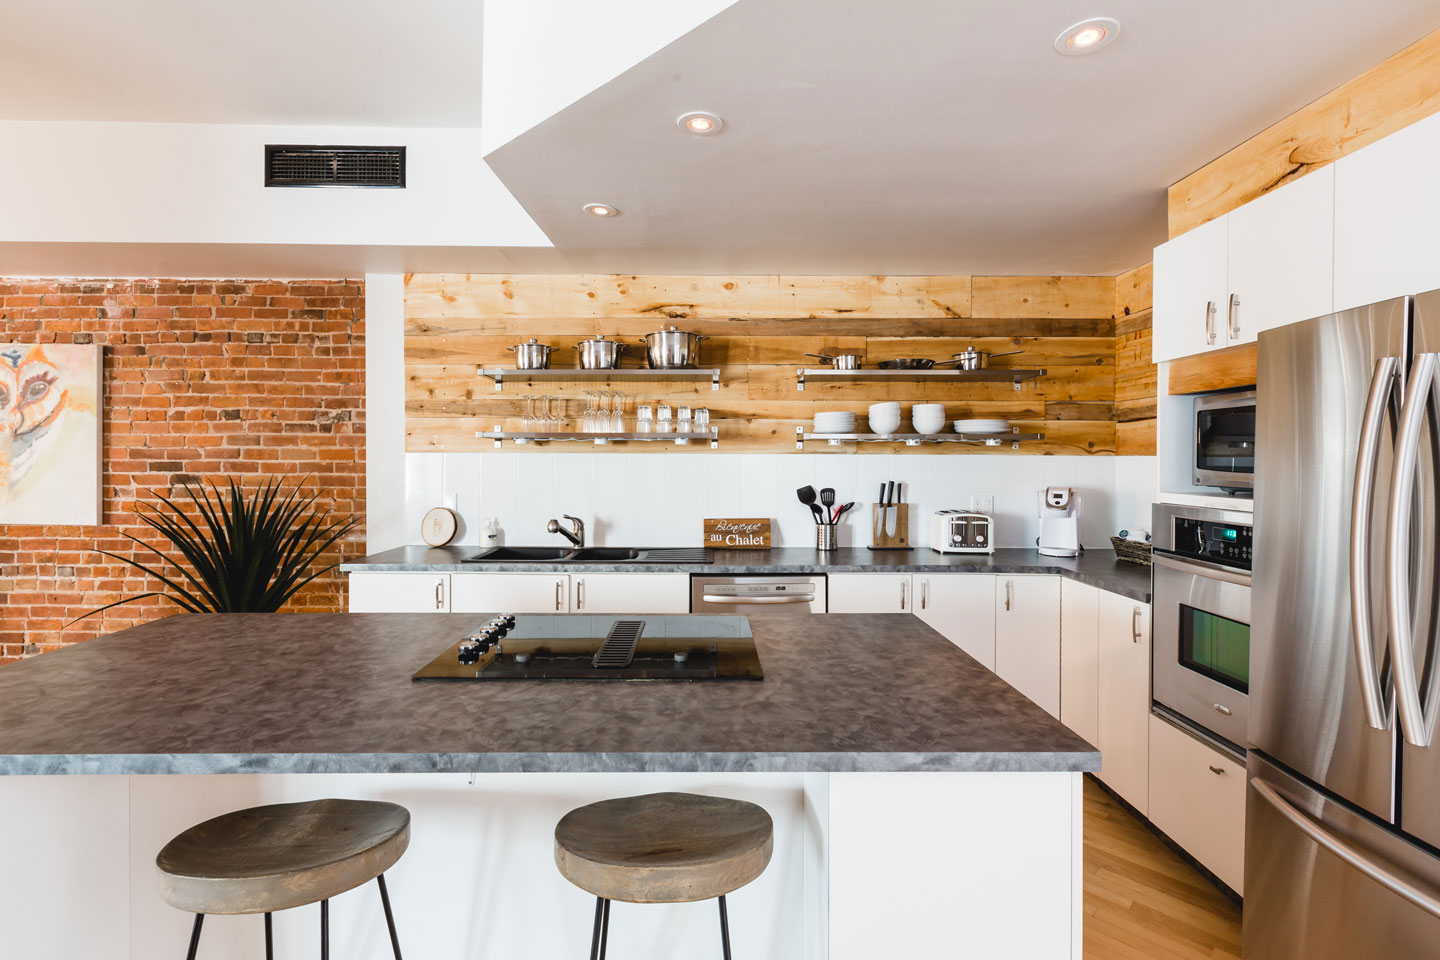 City chalet: kitchen with island and dishwasher